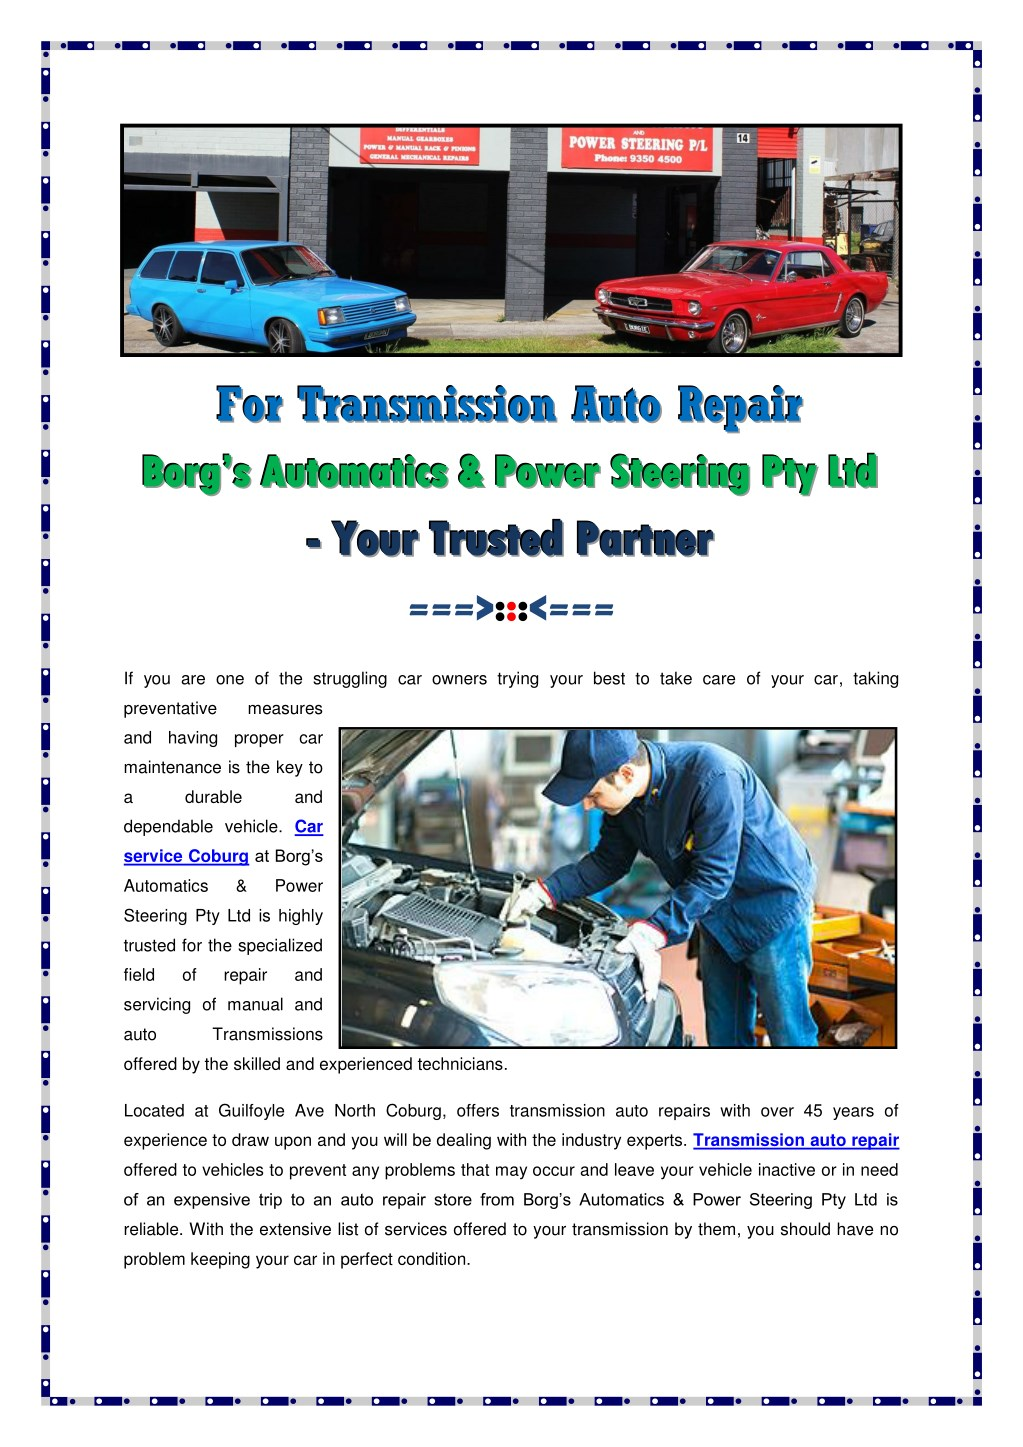 ppt transmission auto repair powerpoint presentation free download id 7740333 transmission auto repair powerpoint